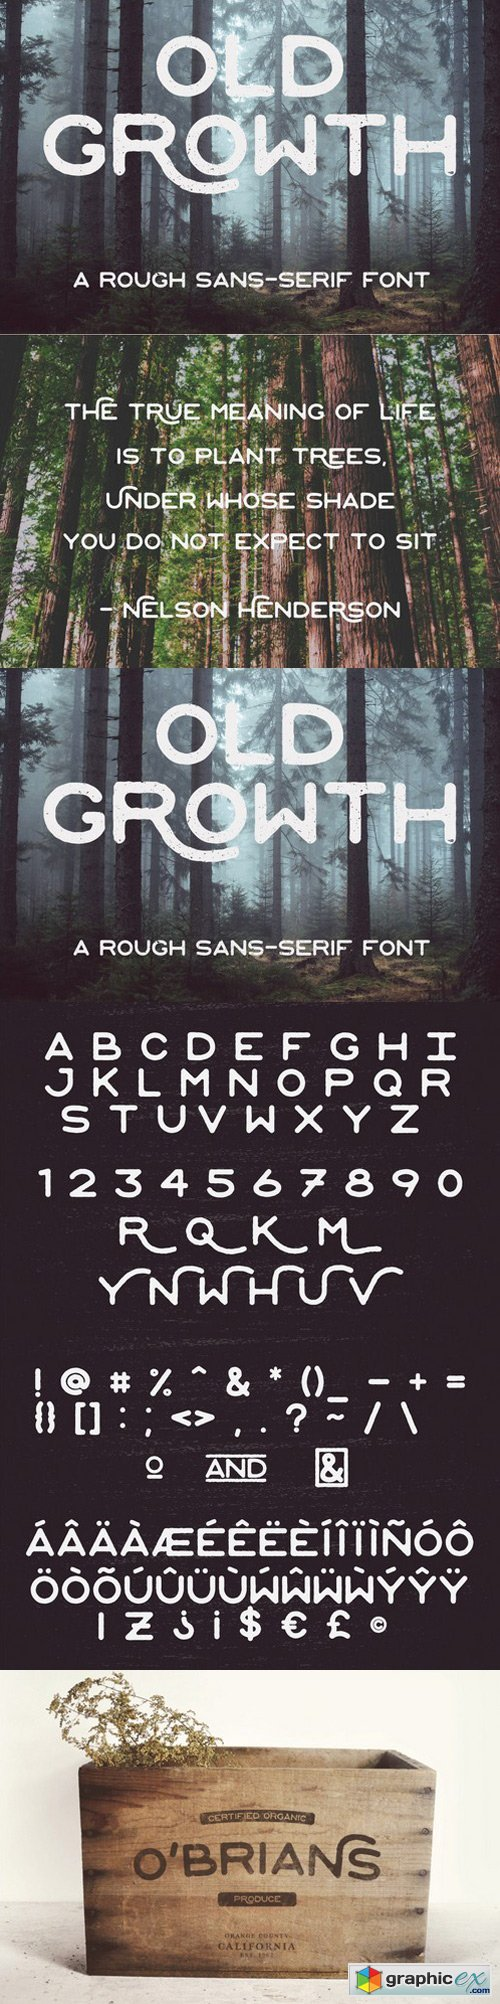 Old Growth font